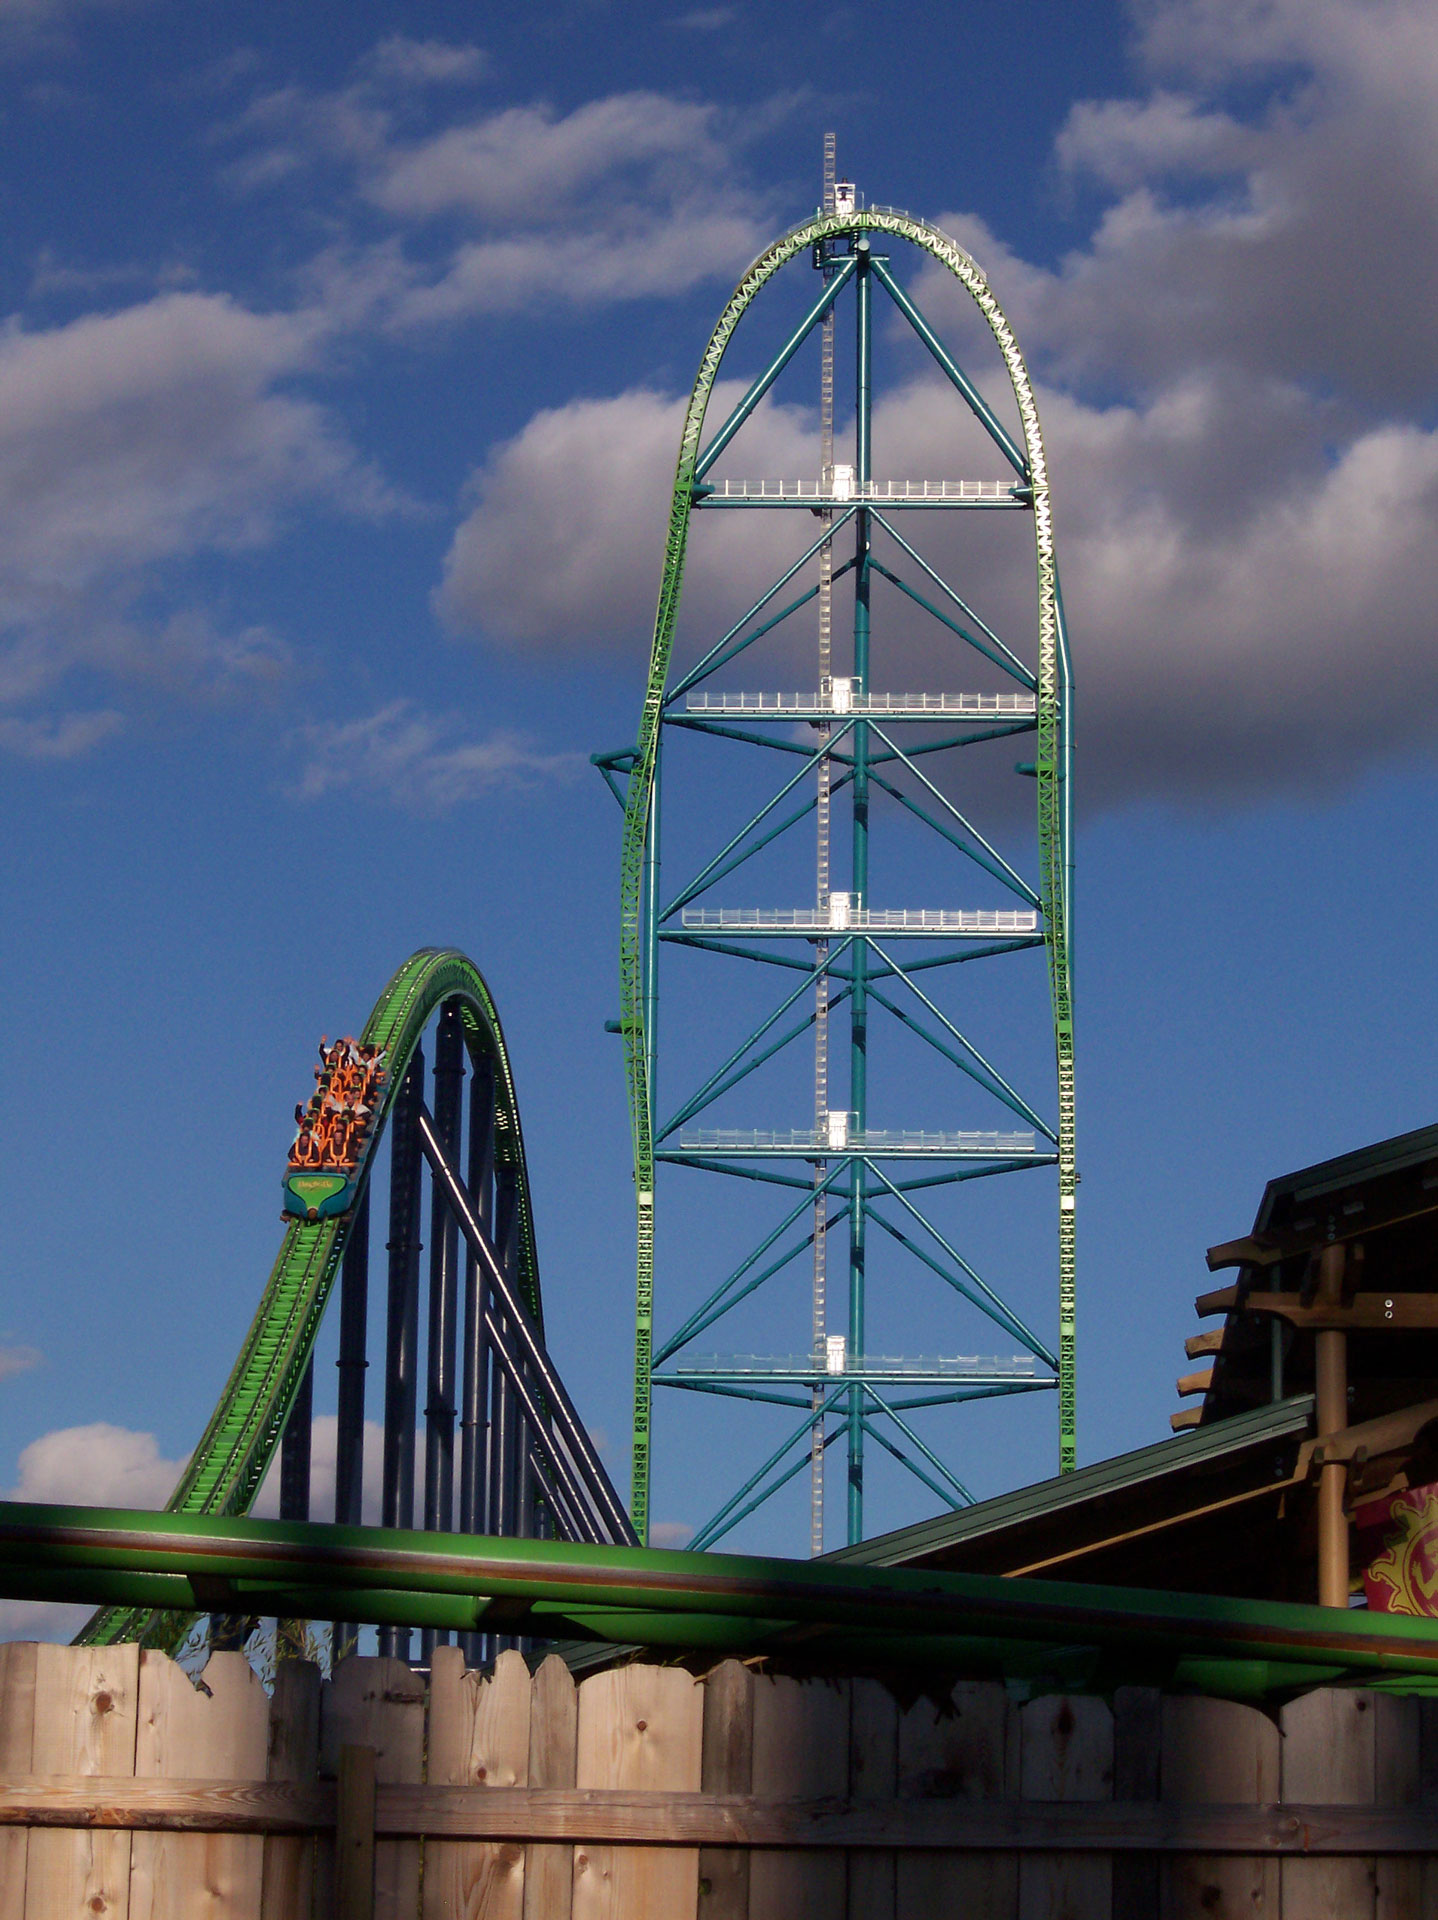 Kingda Ka Roller Coaster Facts Filekingda From Parking Lot Diagram Of Related Keywords Suggestions For Kids